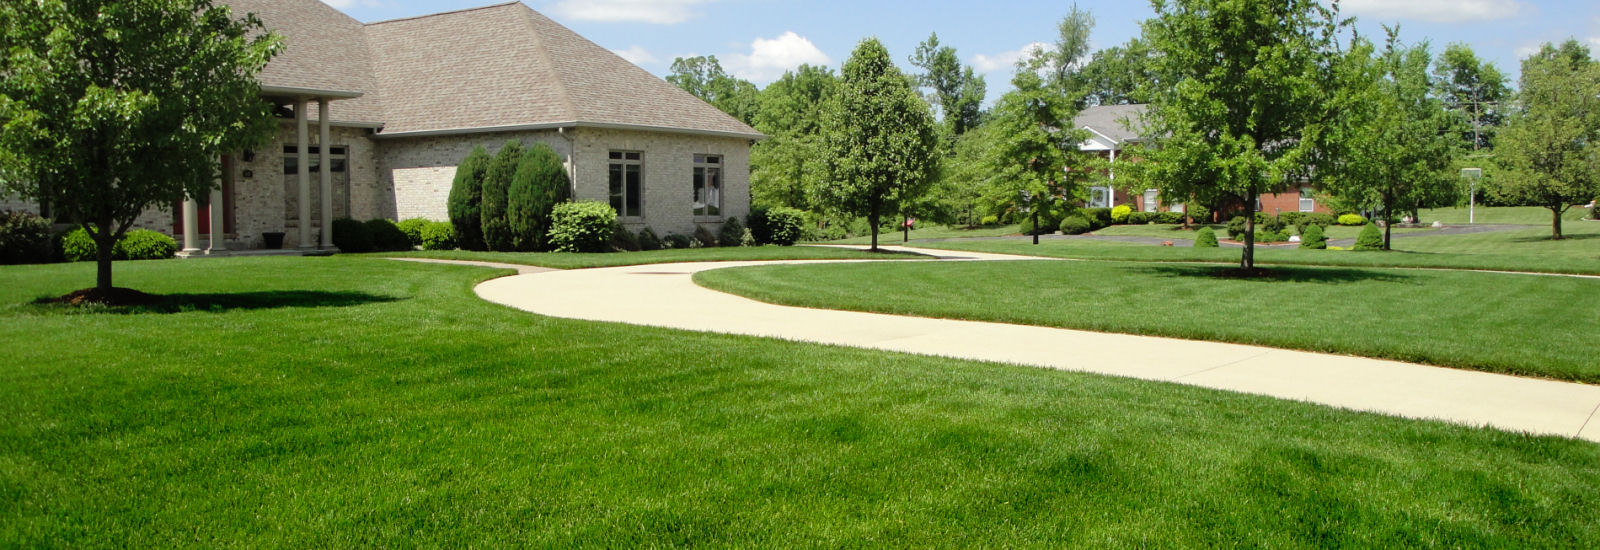 Get lawn care service in st louis mo from alan 39 s lawn for Lawn care companies